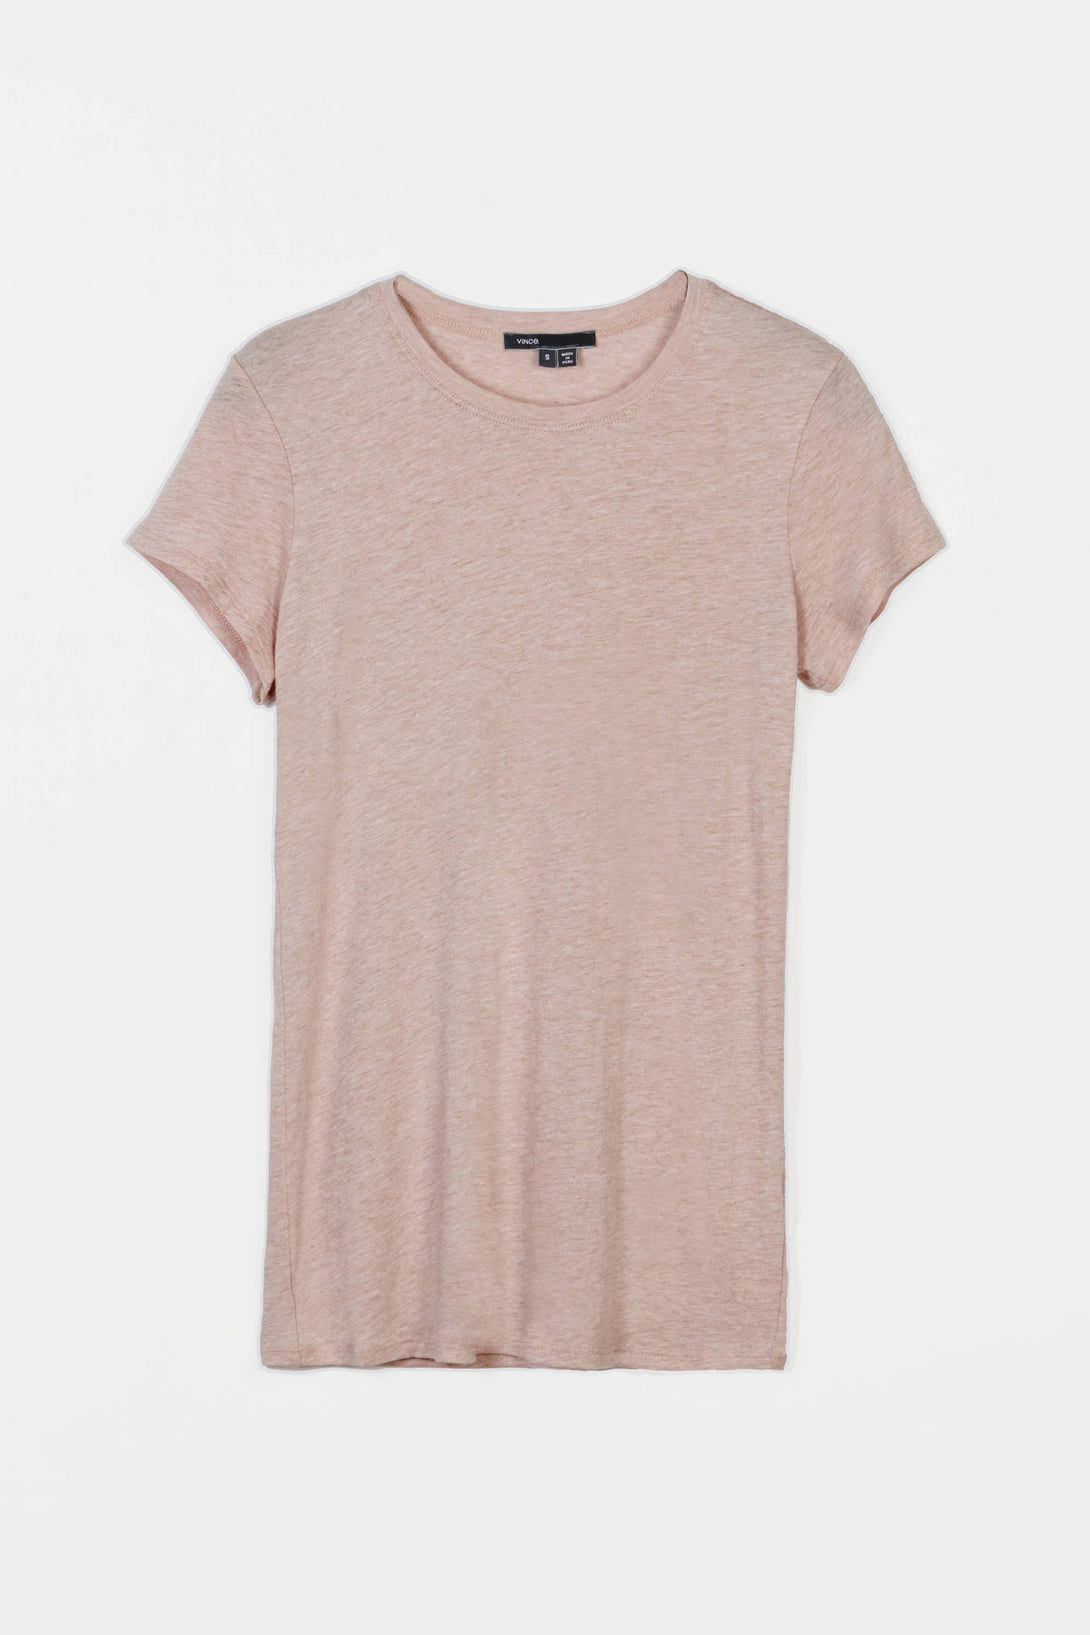 Little Boy Tee - Heather Blush